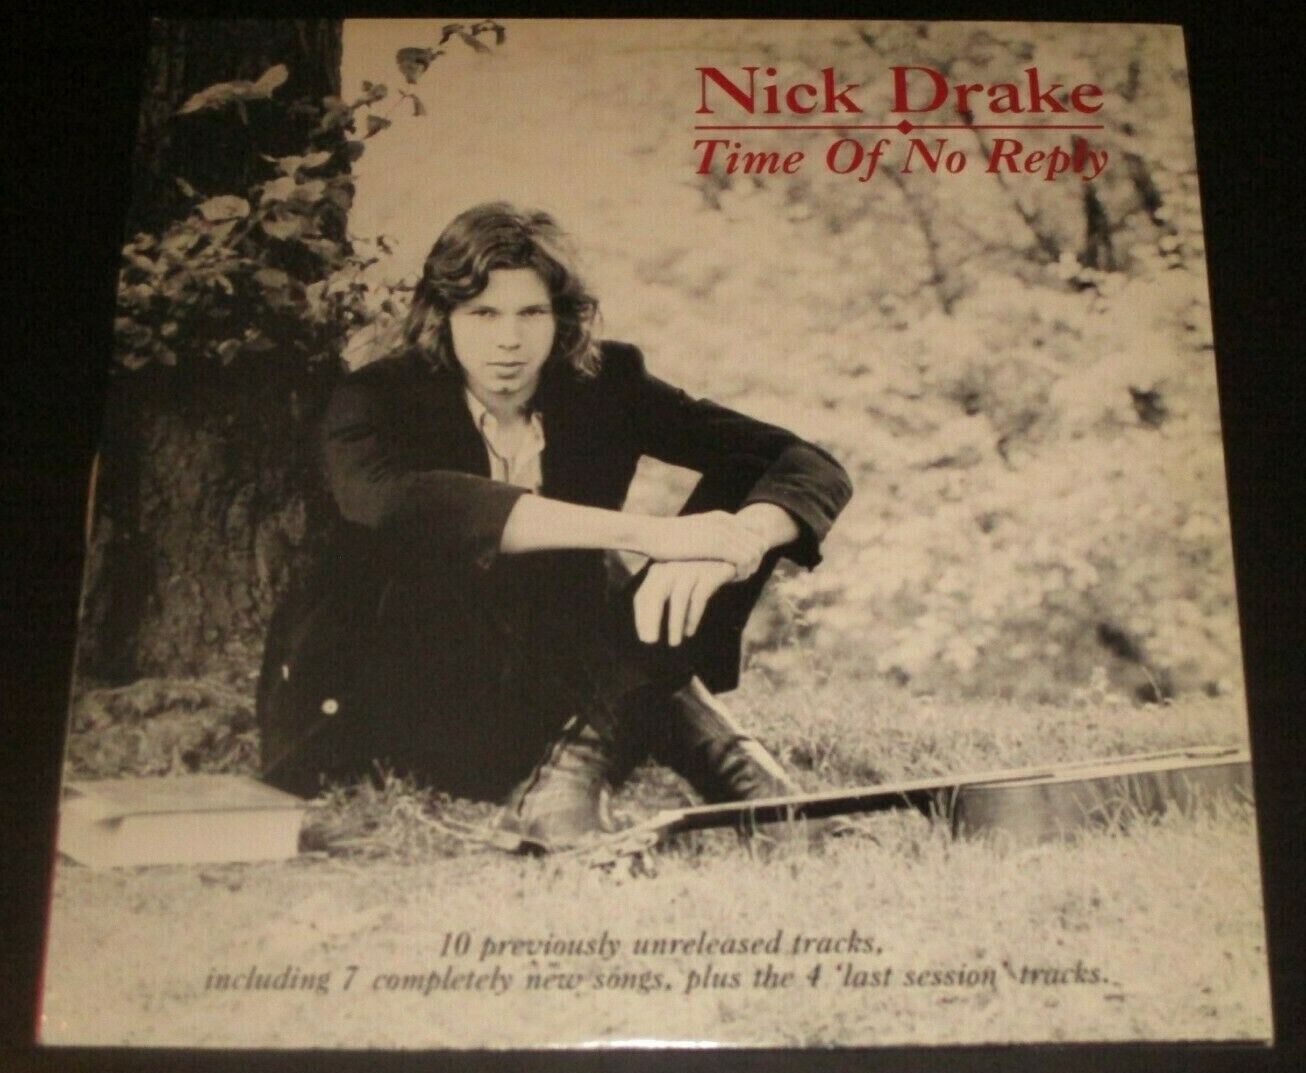 Nick Drake - Time Of No Reply - UK Hannibal LP